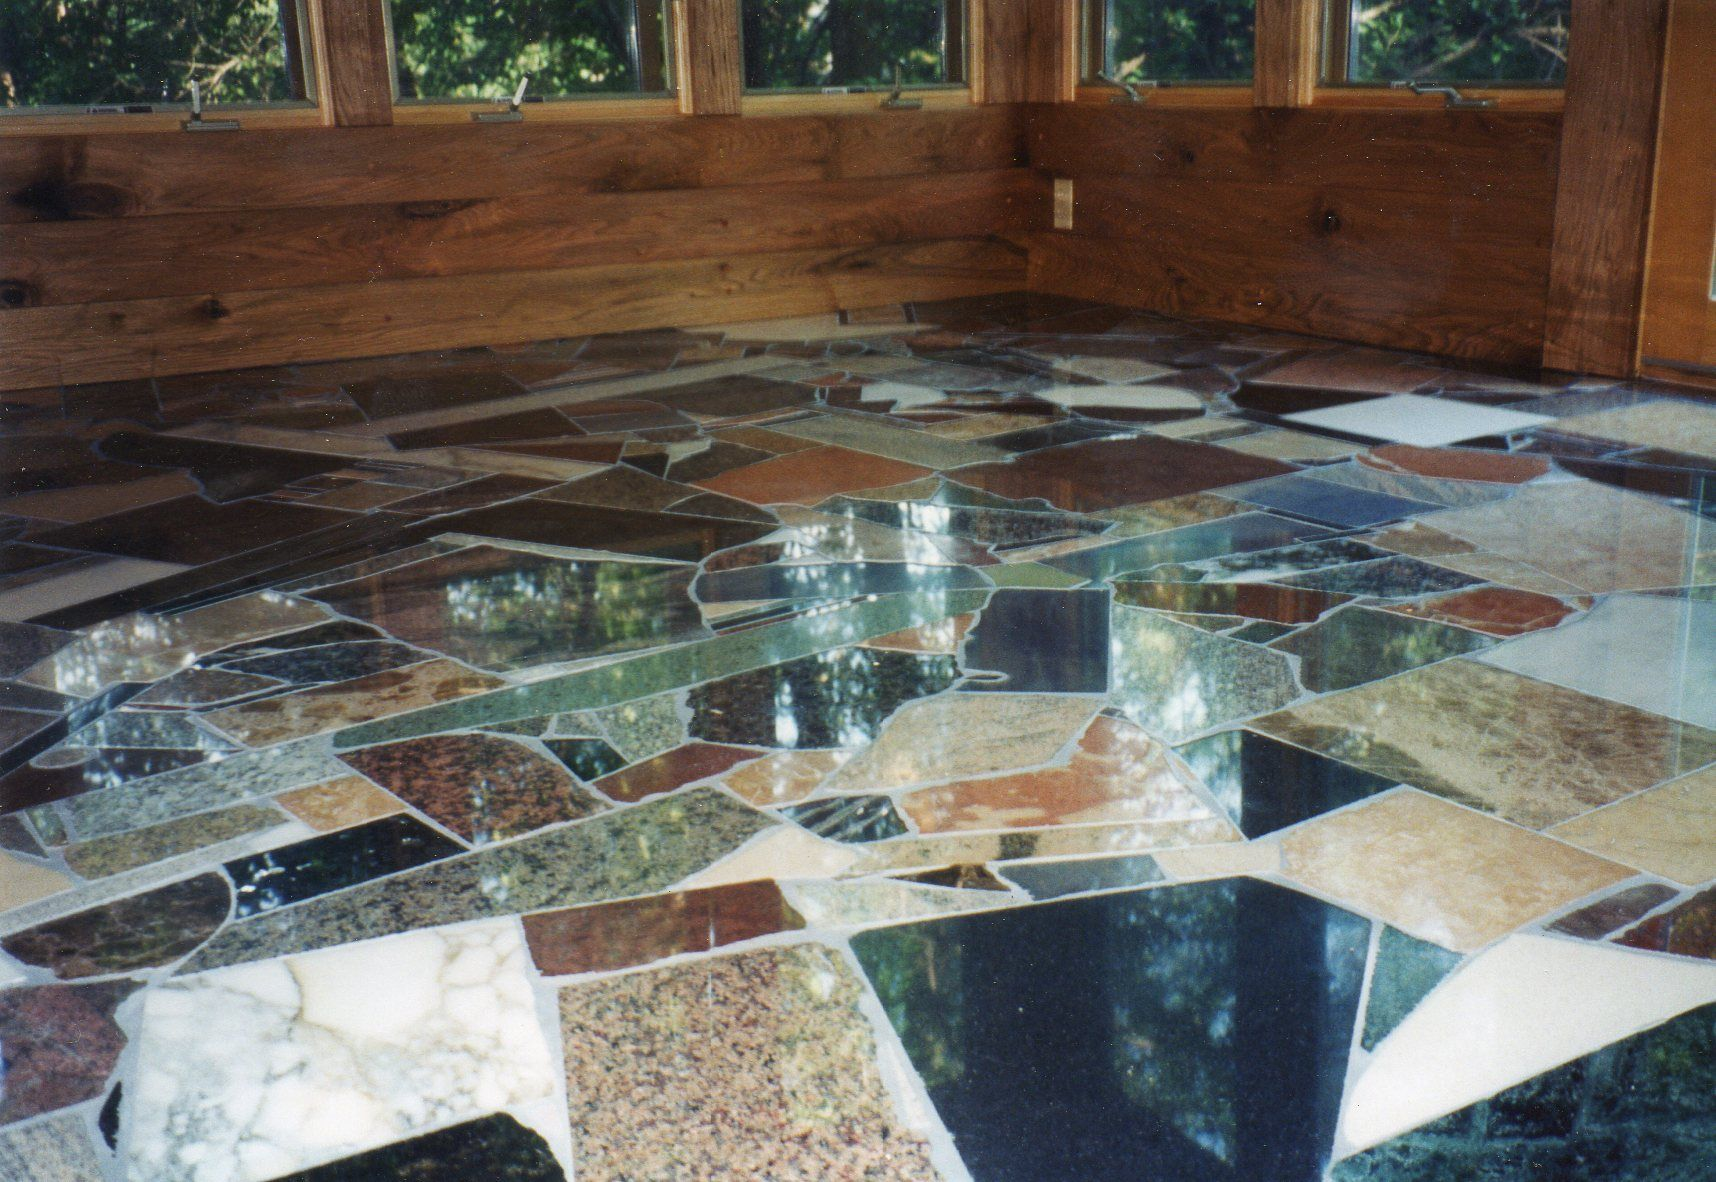 Uses For Granite Countertop Pieces Frugality Forum At Permies